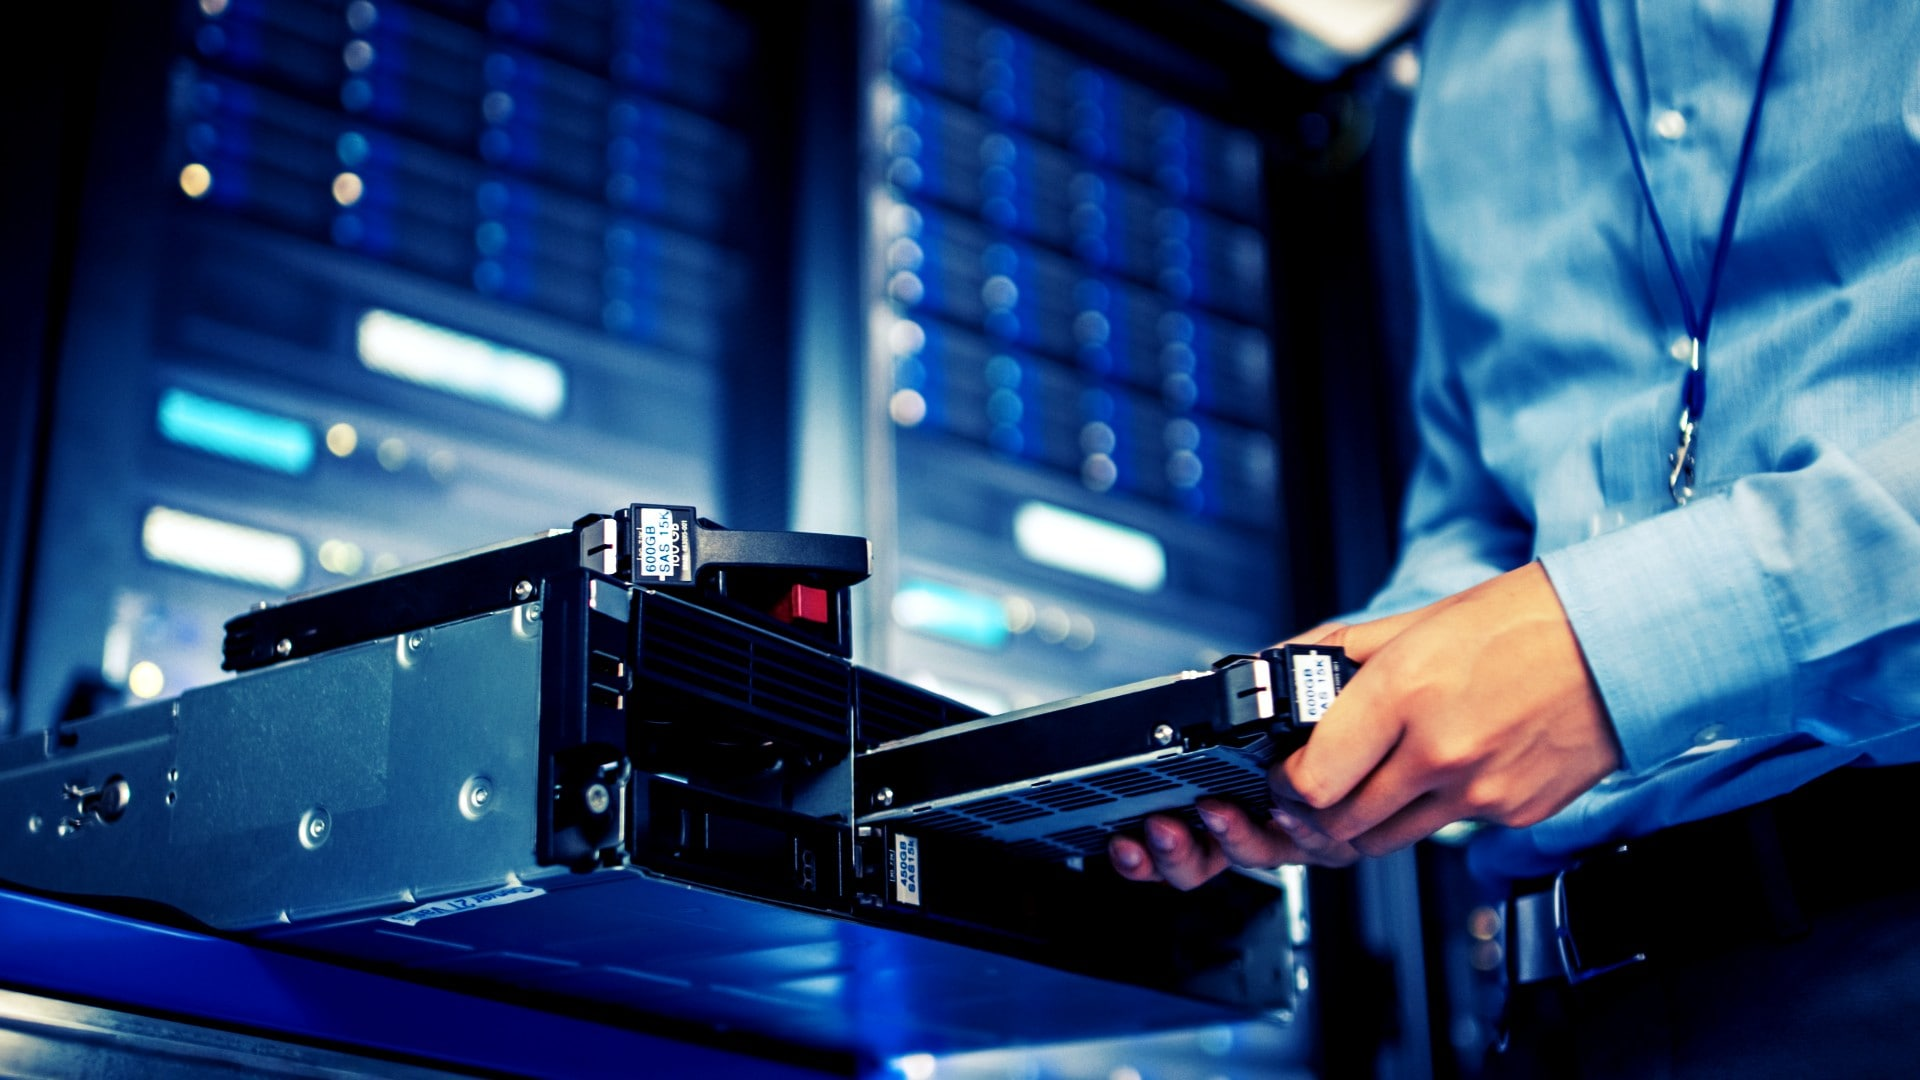 how to rack a server step by step